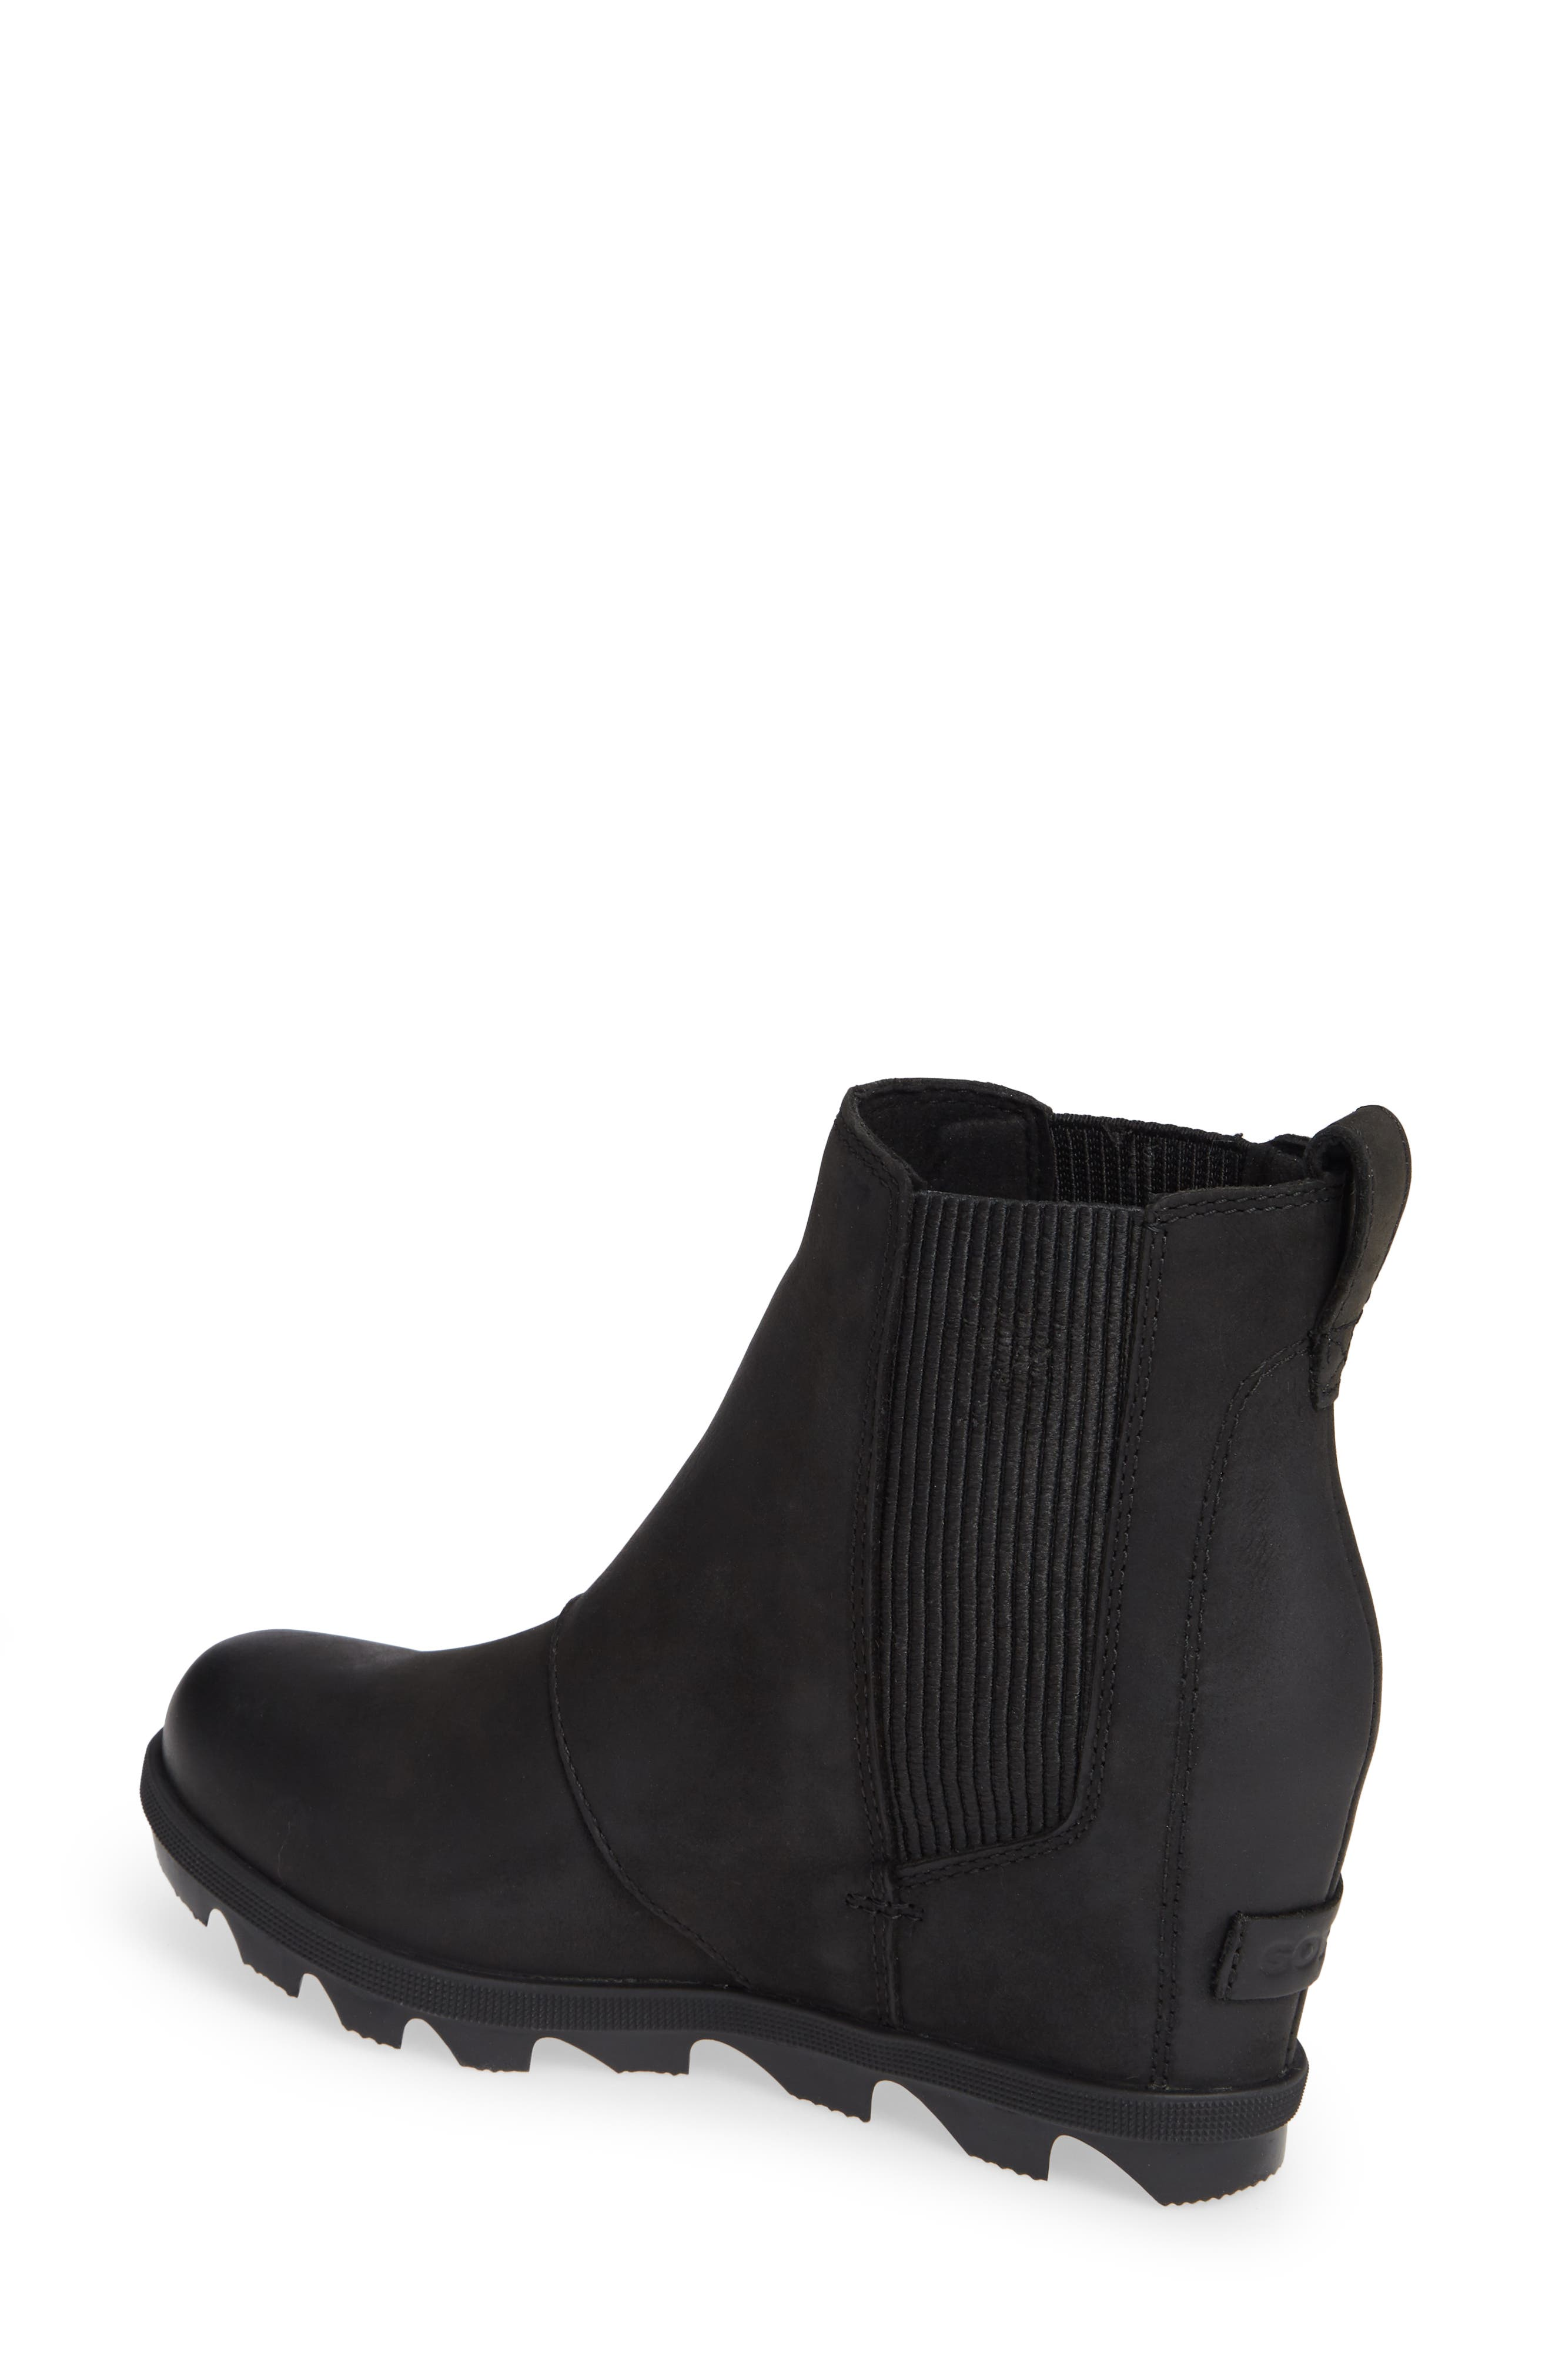 SOREL,                             Joan of Arctic II Waterproof Wedge Bootie,                             Alternate thumbnail 2, color,                             BLACK